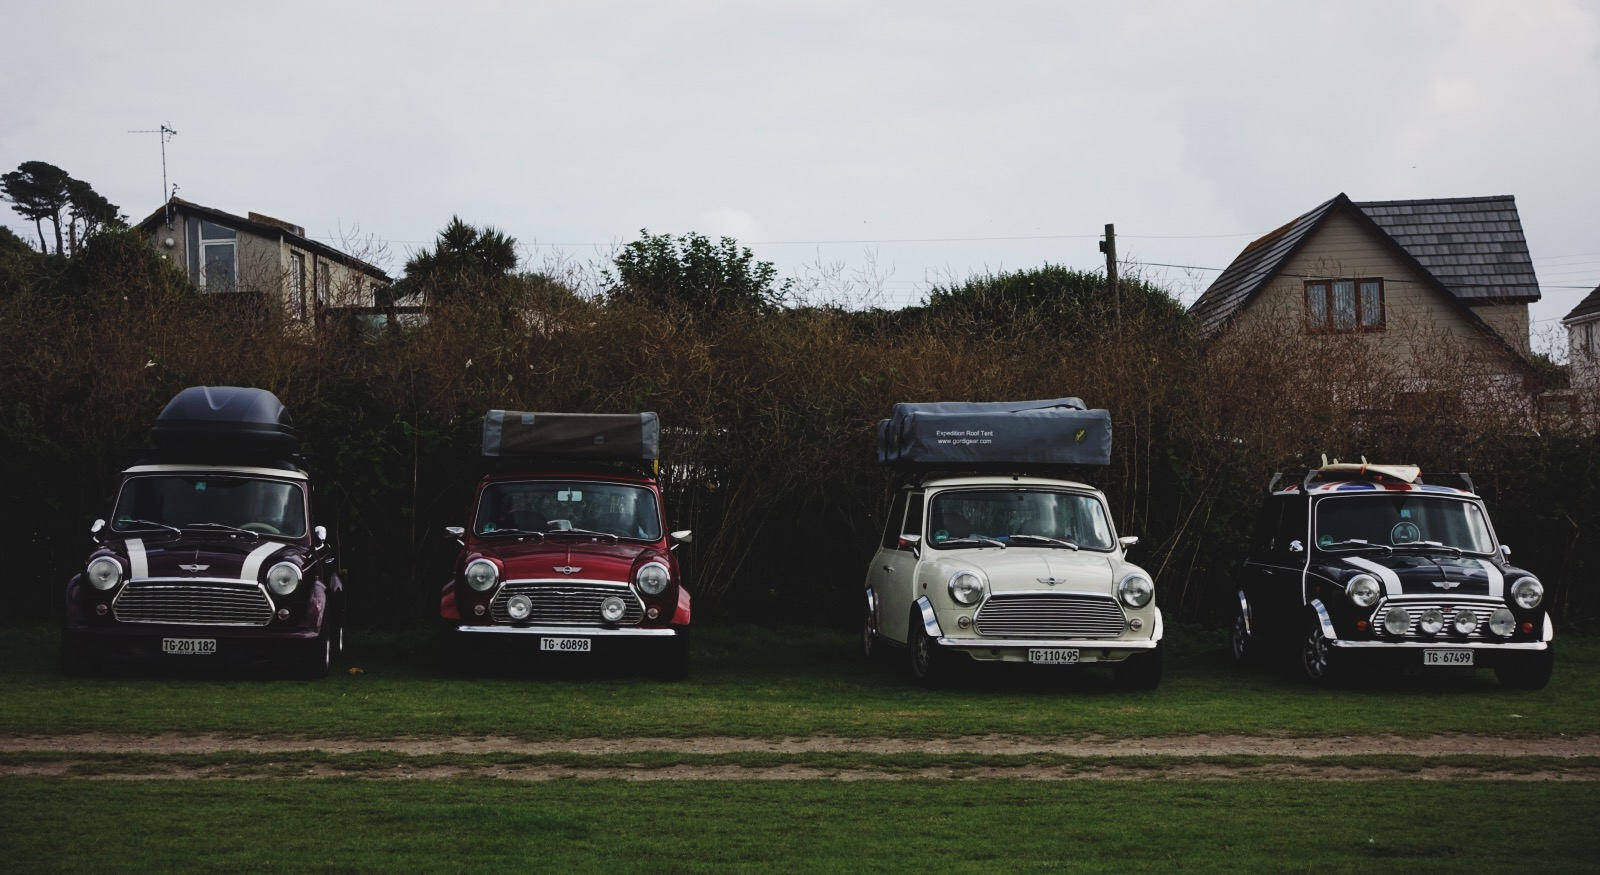 Cornwall is also known for surfing (although, as a Caribbean girl, why anyone would surf in those frigid waters is beyond me). This row of     Minis     with their surfboards on their roofs is possibly the most Cornish thing I've ever seen.